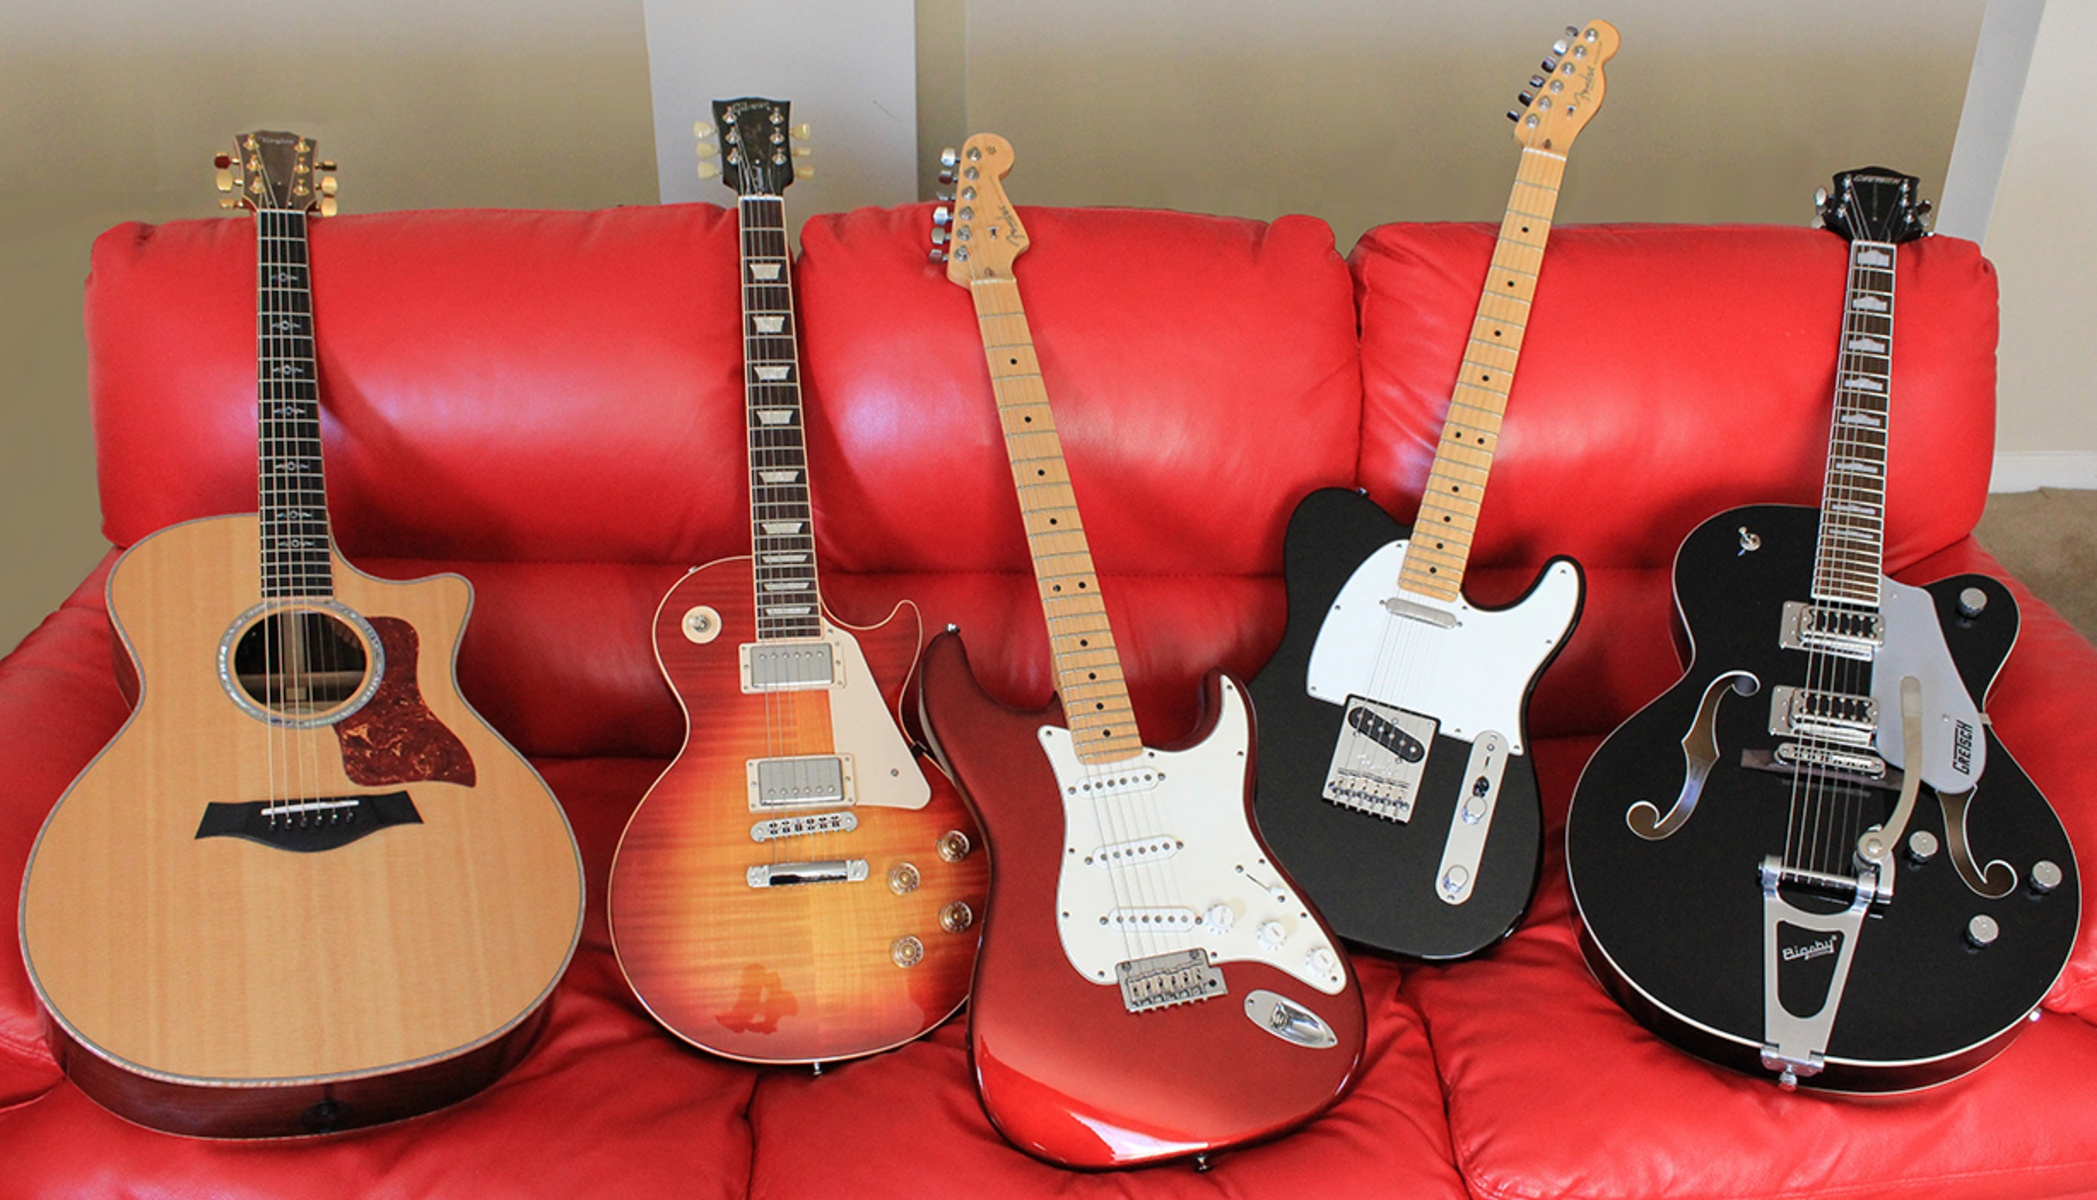 Photo of Fender American Standard Telecaster Electric Guitar and more gear